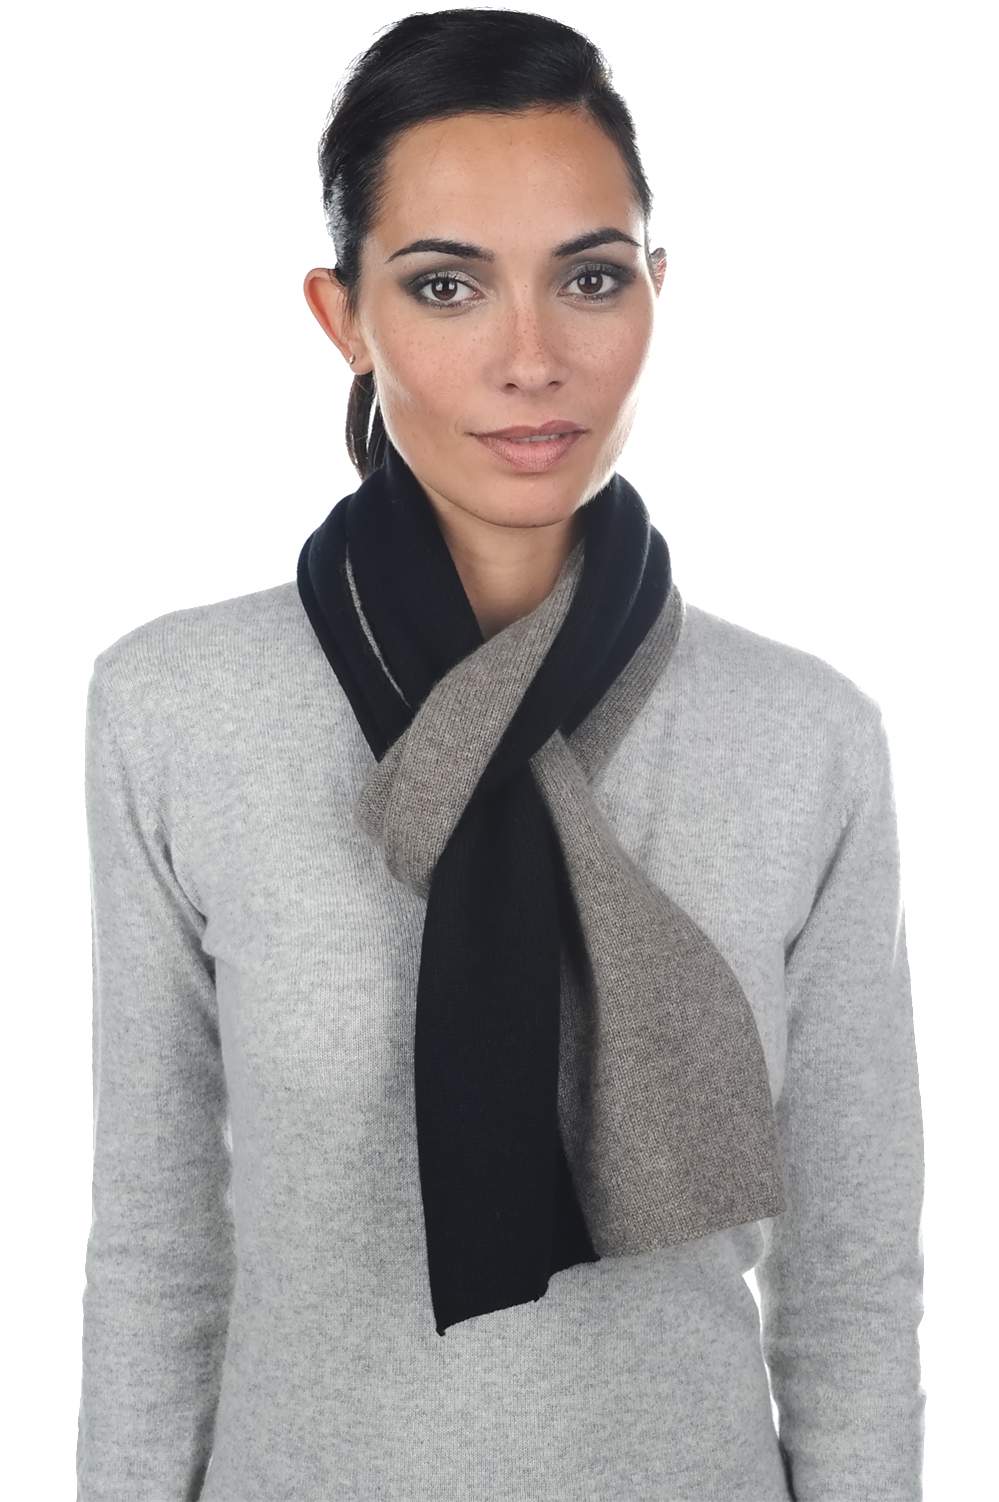 cashmere & Yak accessories scarf mufflers luvo black natural 164 x 26 cm